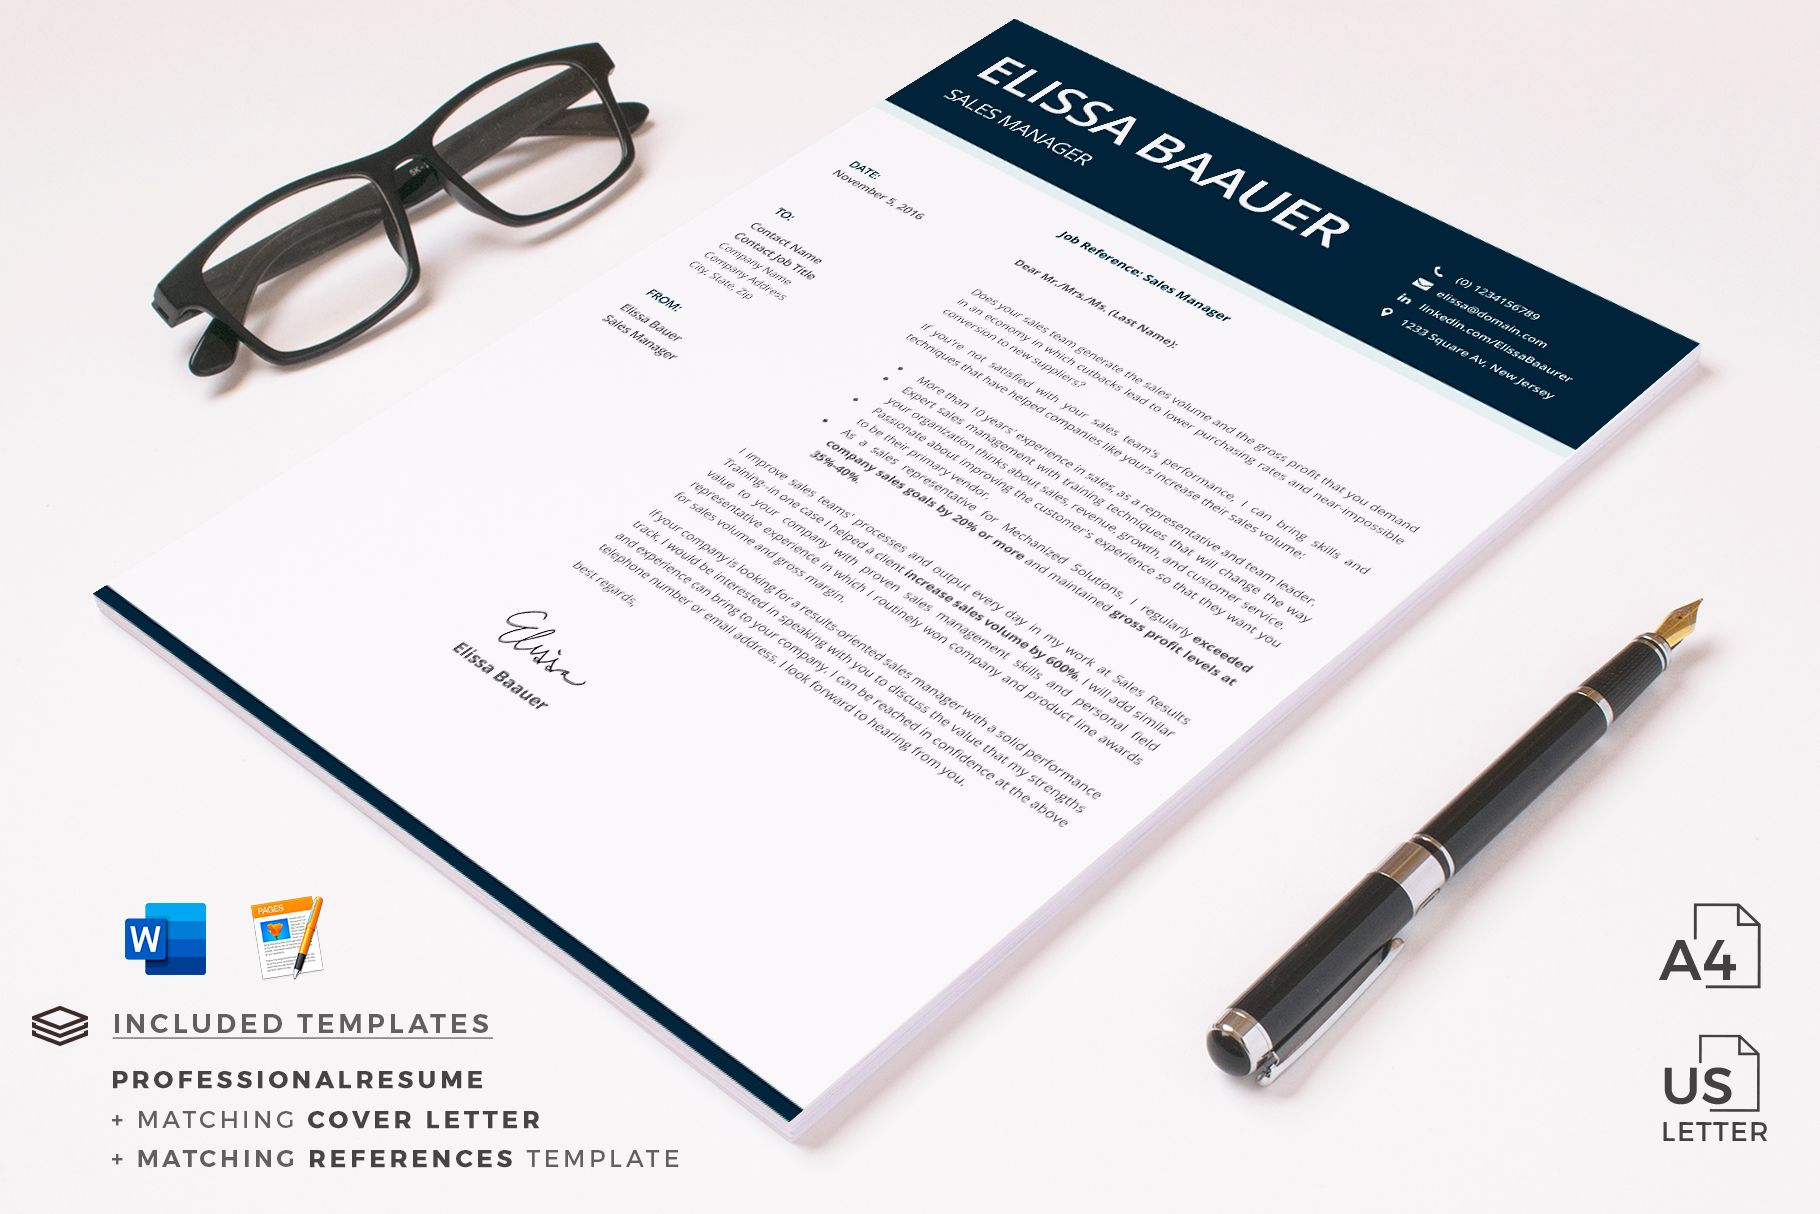 Creative Resume Templates For Ms Word And Mac Pages Professional Resume Templates And Matching C Modern Resume Template Resume Template Simple Resume Template